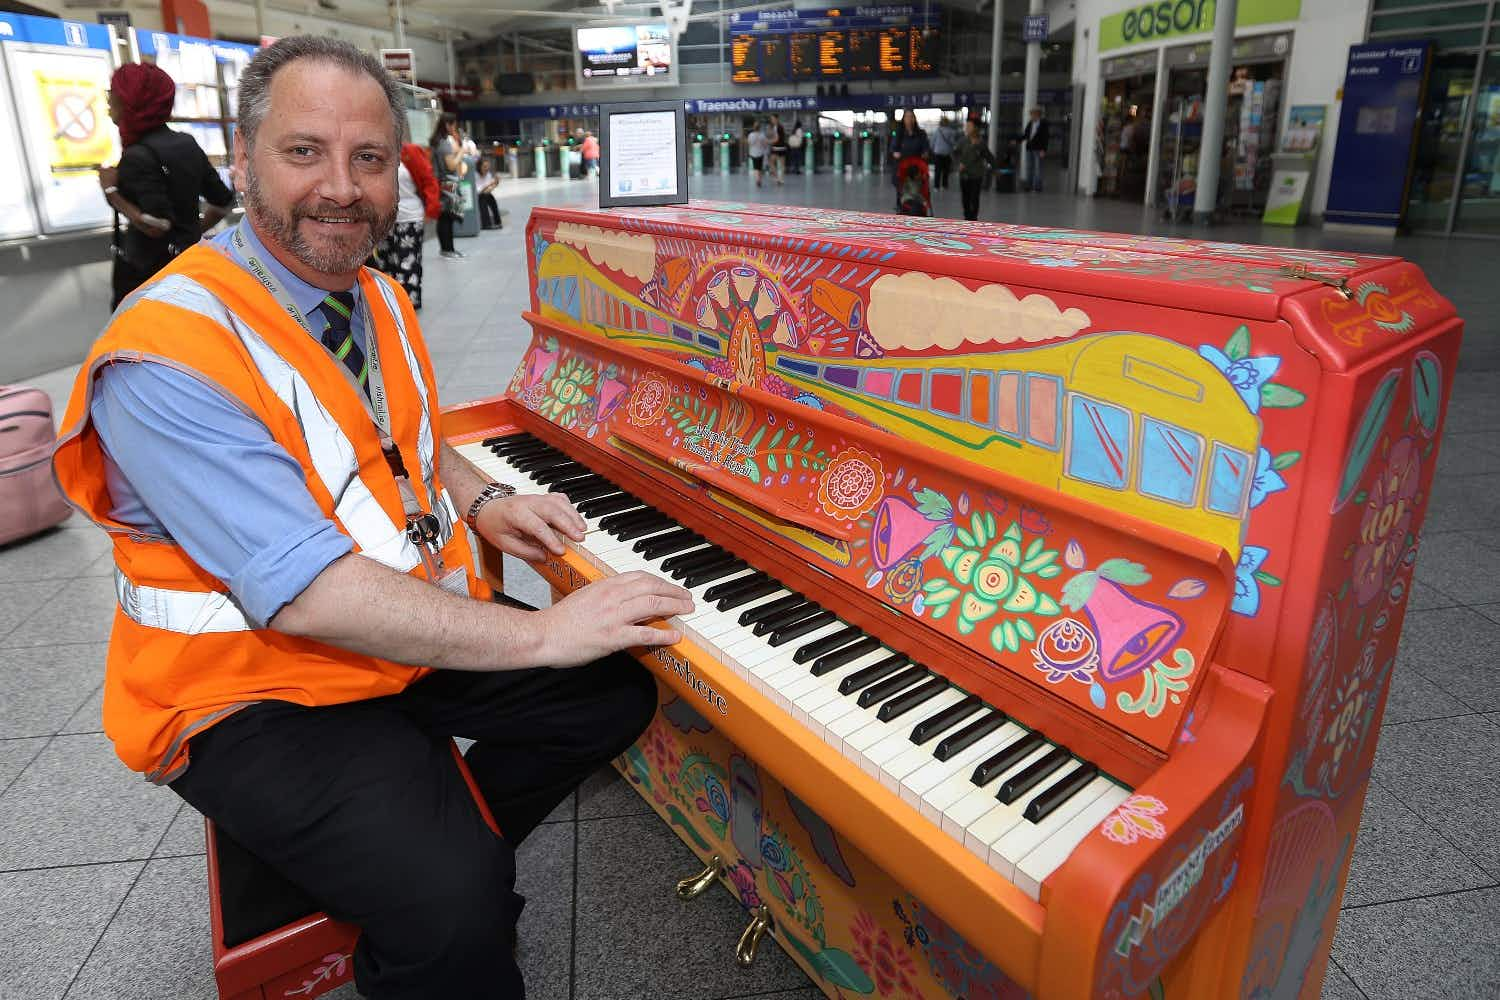 Something magical happens when a medical student stumbles across a piano in an Irish train station